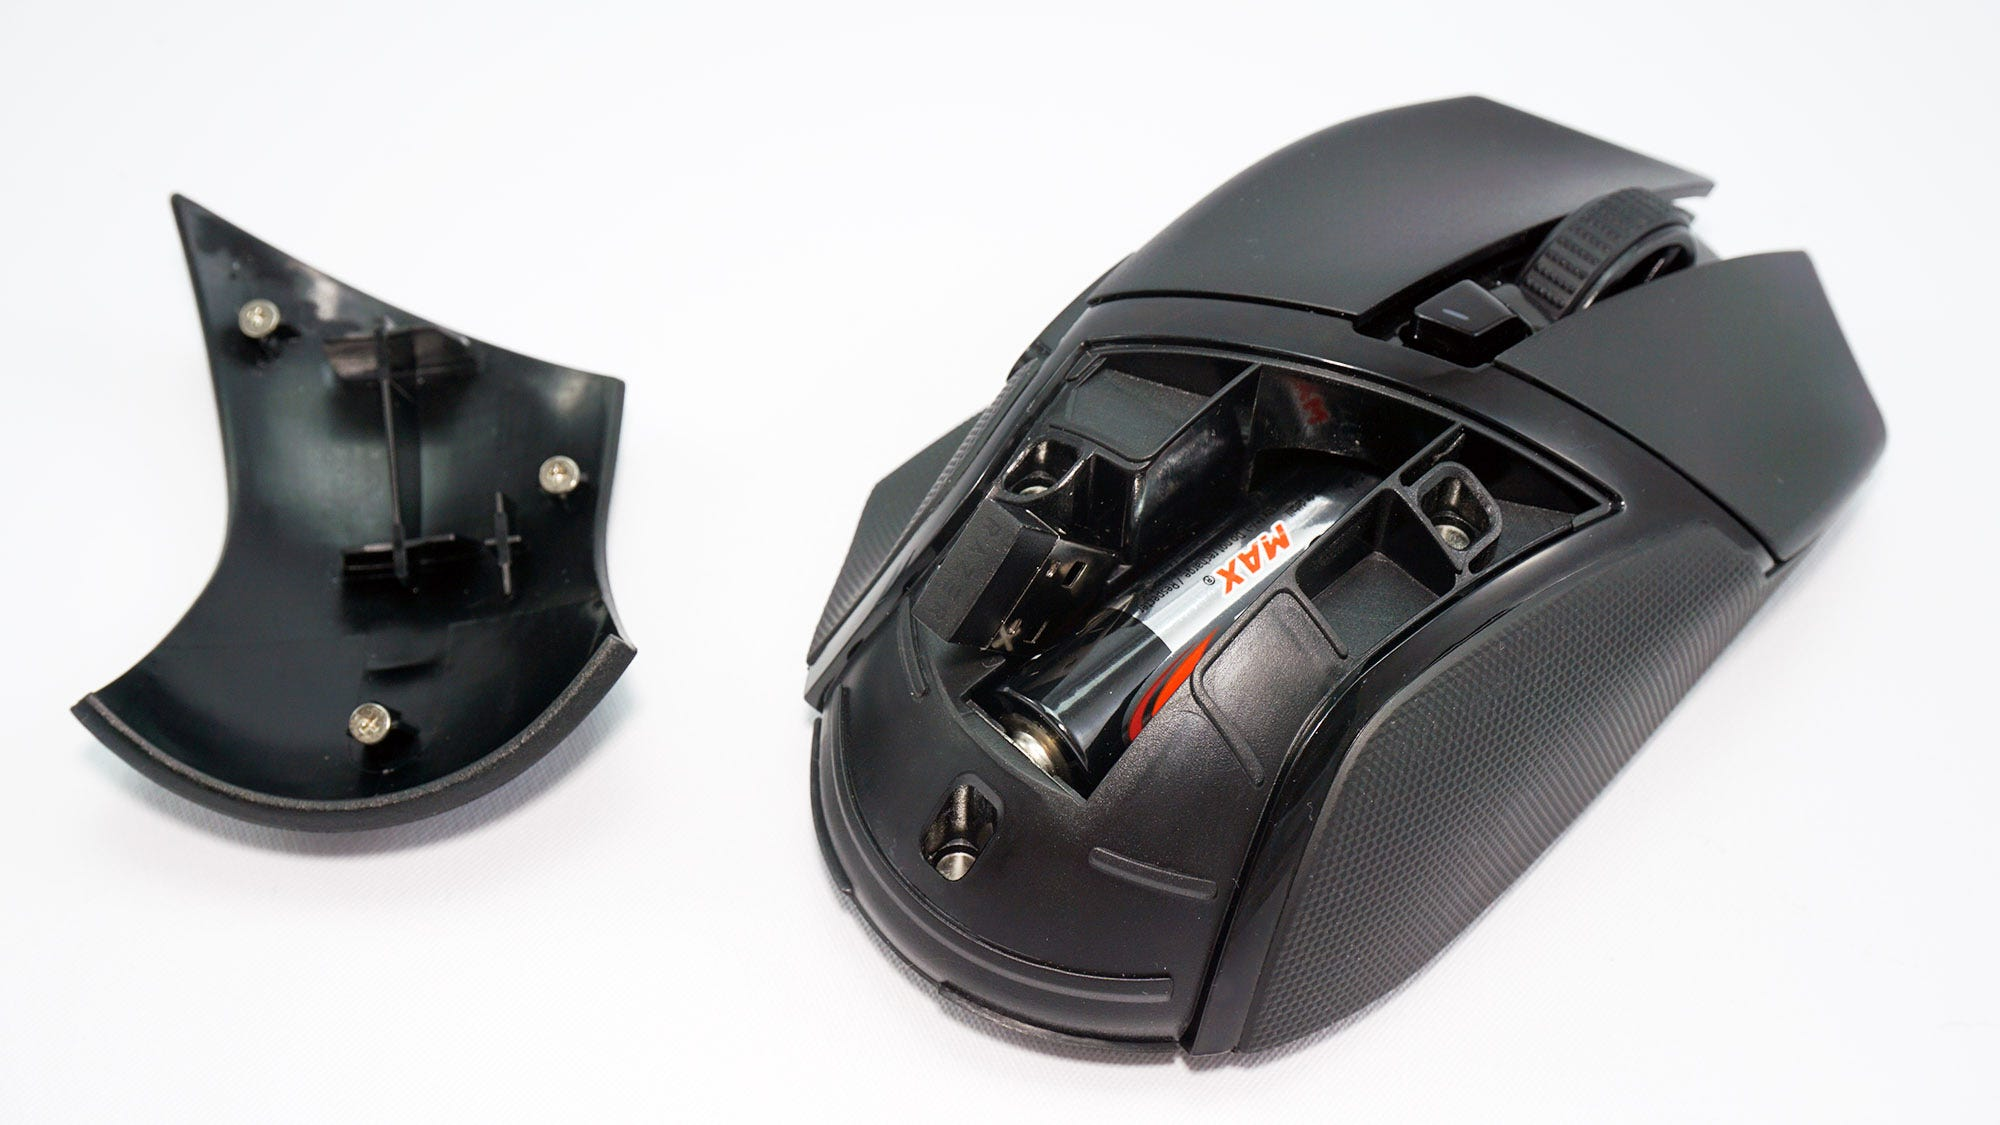 The mouse's exposed battery bay.